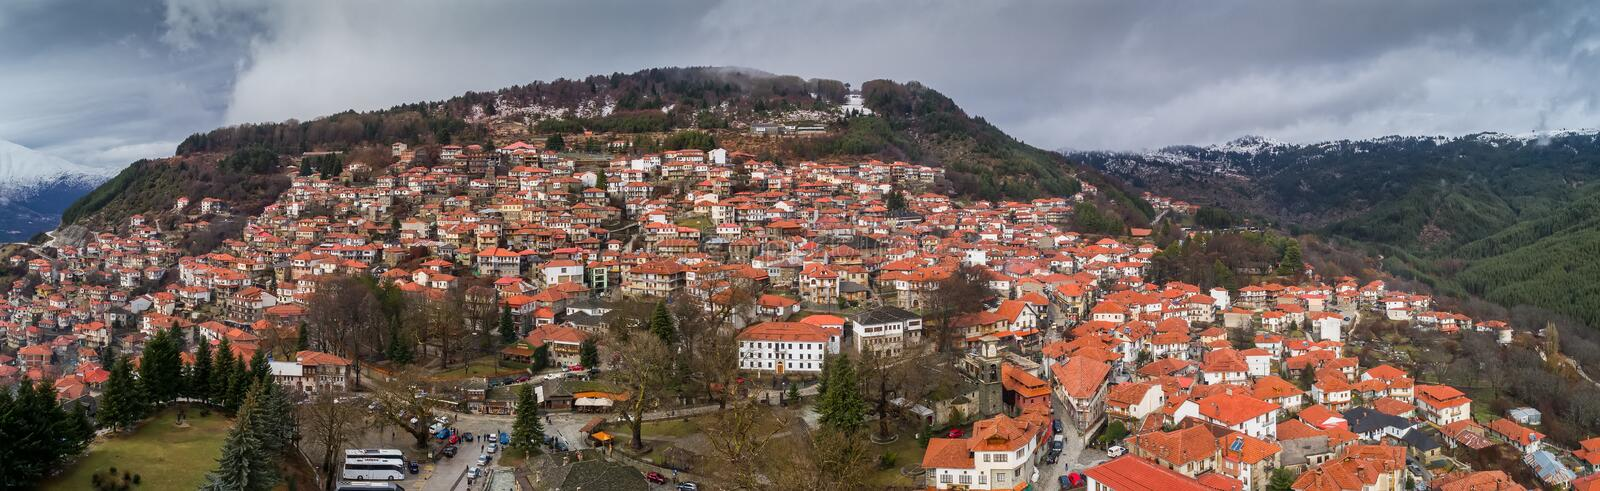 Aerial view of the village Metsovo in Epirus, northern Greece stock photos